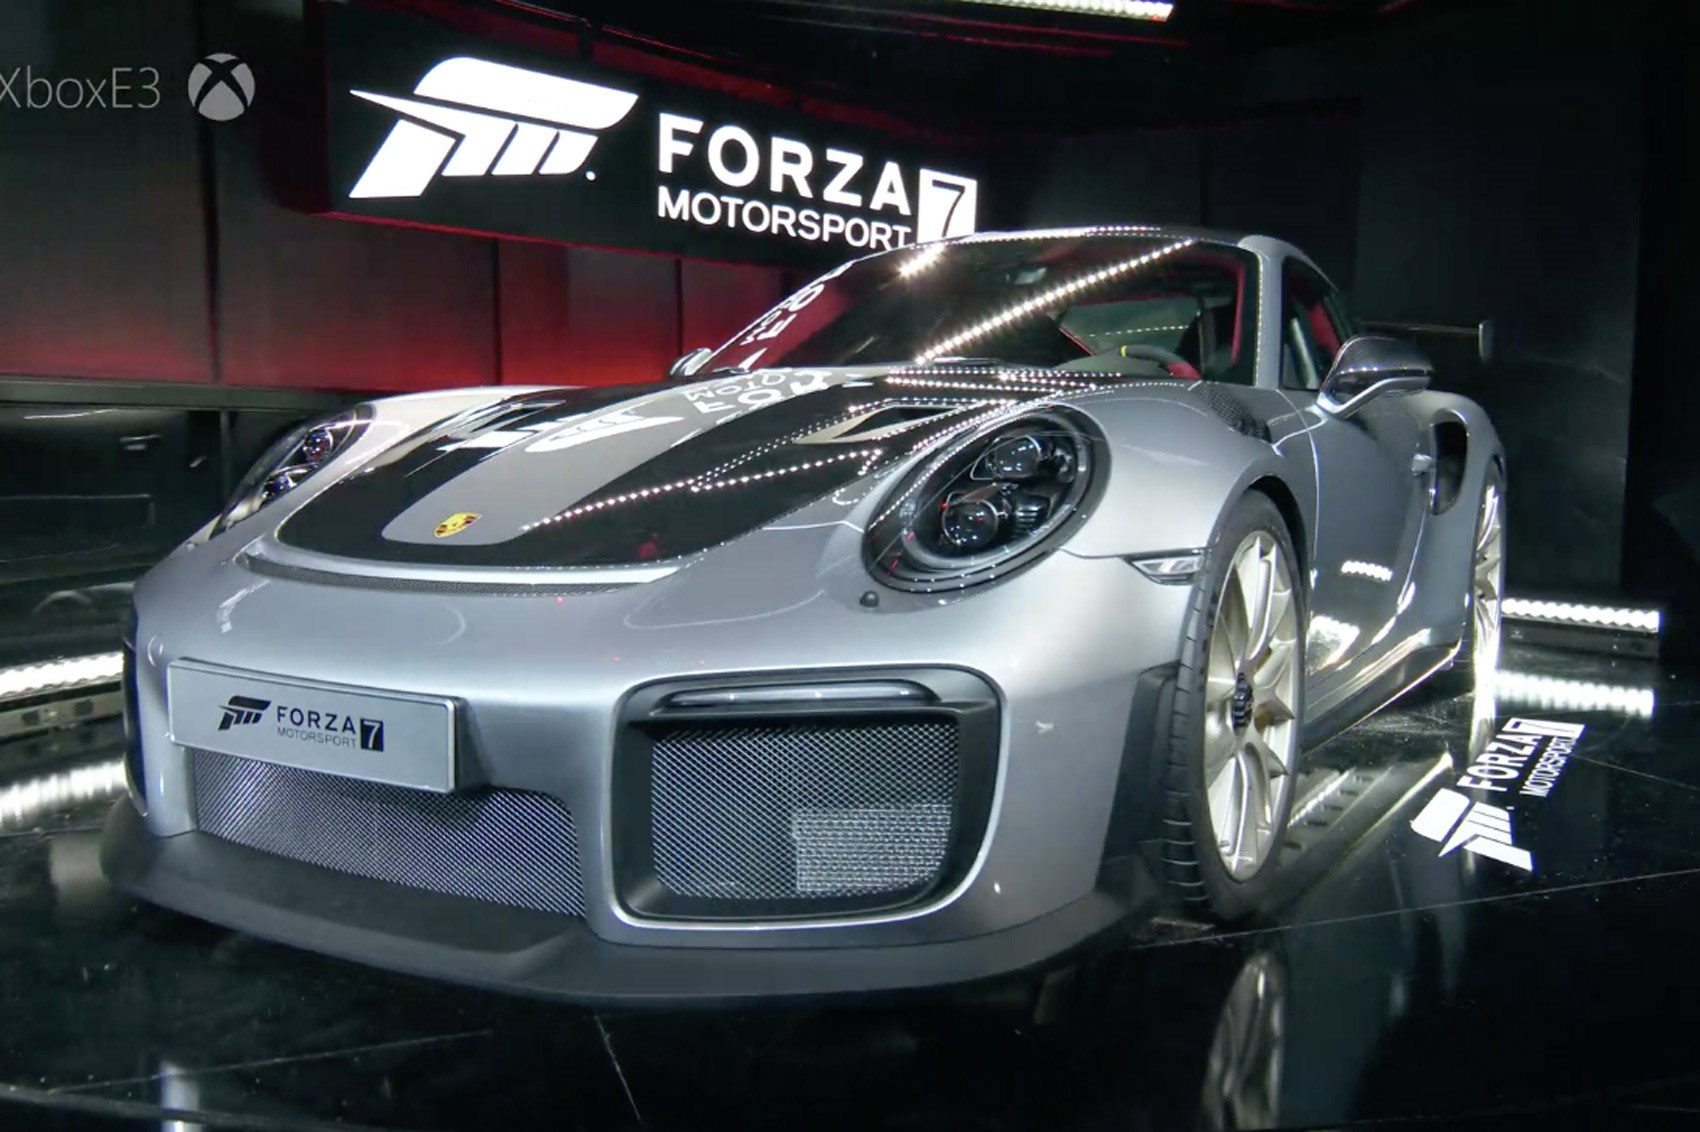 porsche 911 gt2 rs 2018 pictures specs and info by car. Black Bedroom Furniture Sets. Home Design Ideas